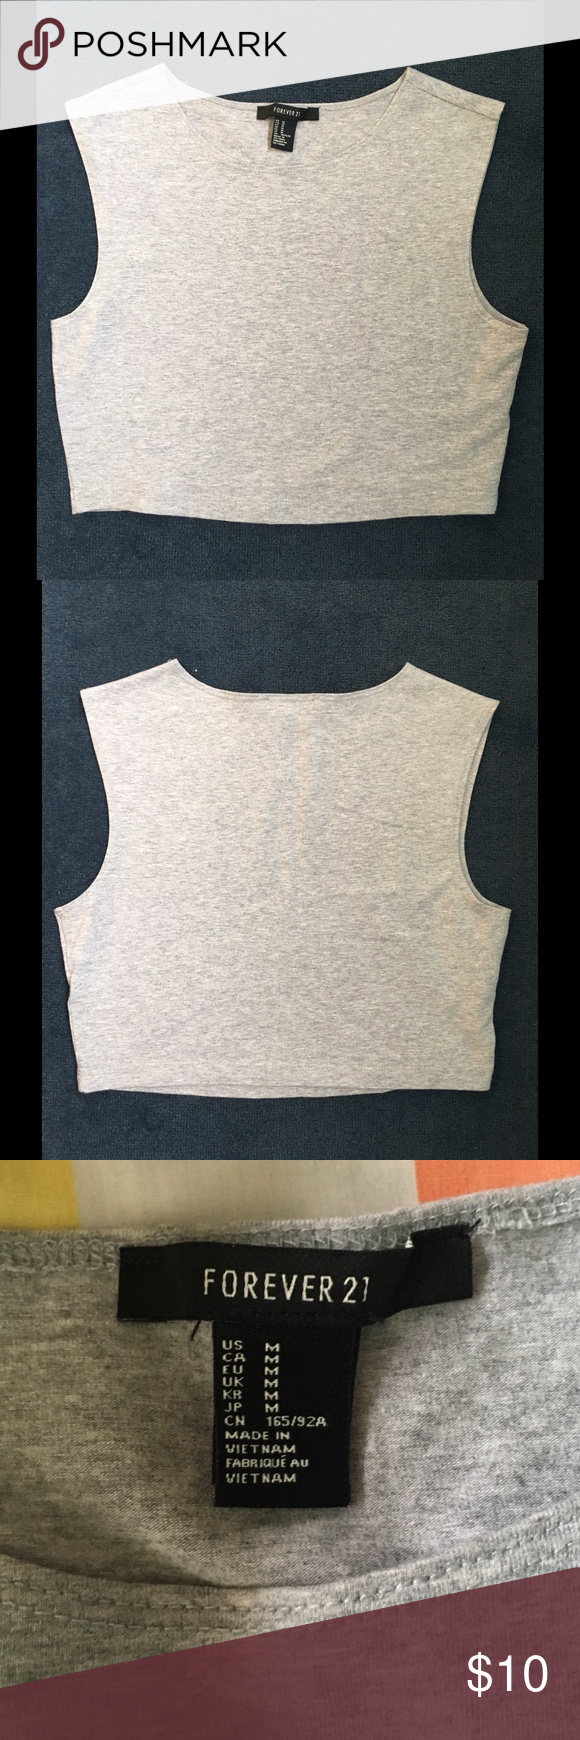 Heather grey crop top Heather grey crop top! Not Brandy just listed as that for views! Worn once but is in great condition! Make offers :) Brandy Melville Tops Crop Tops